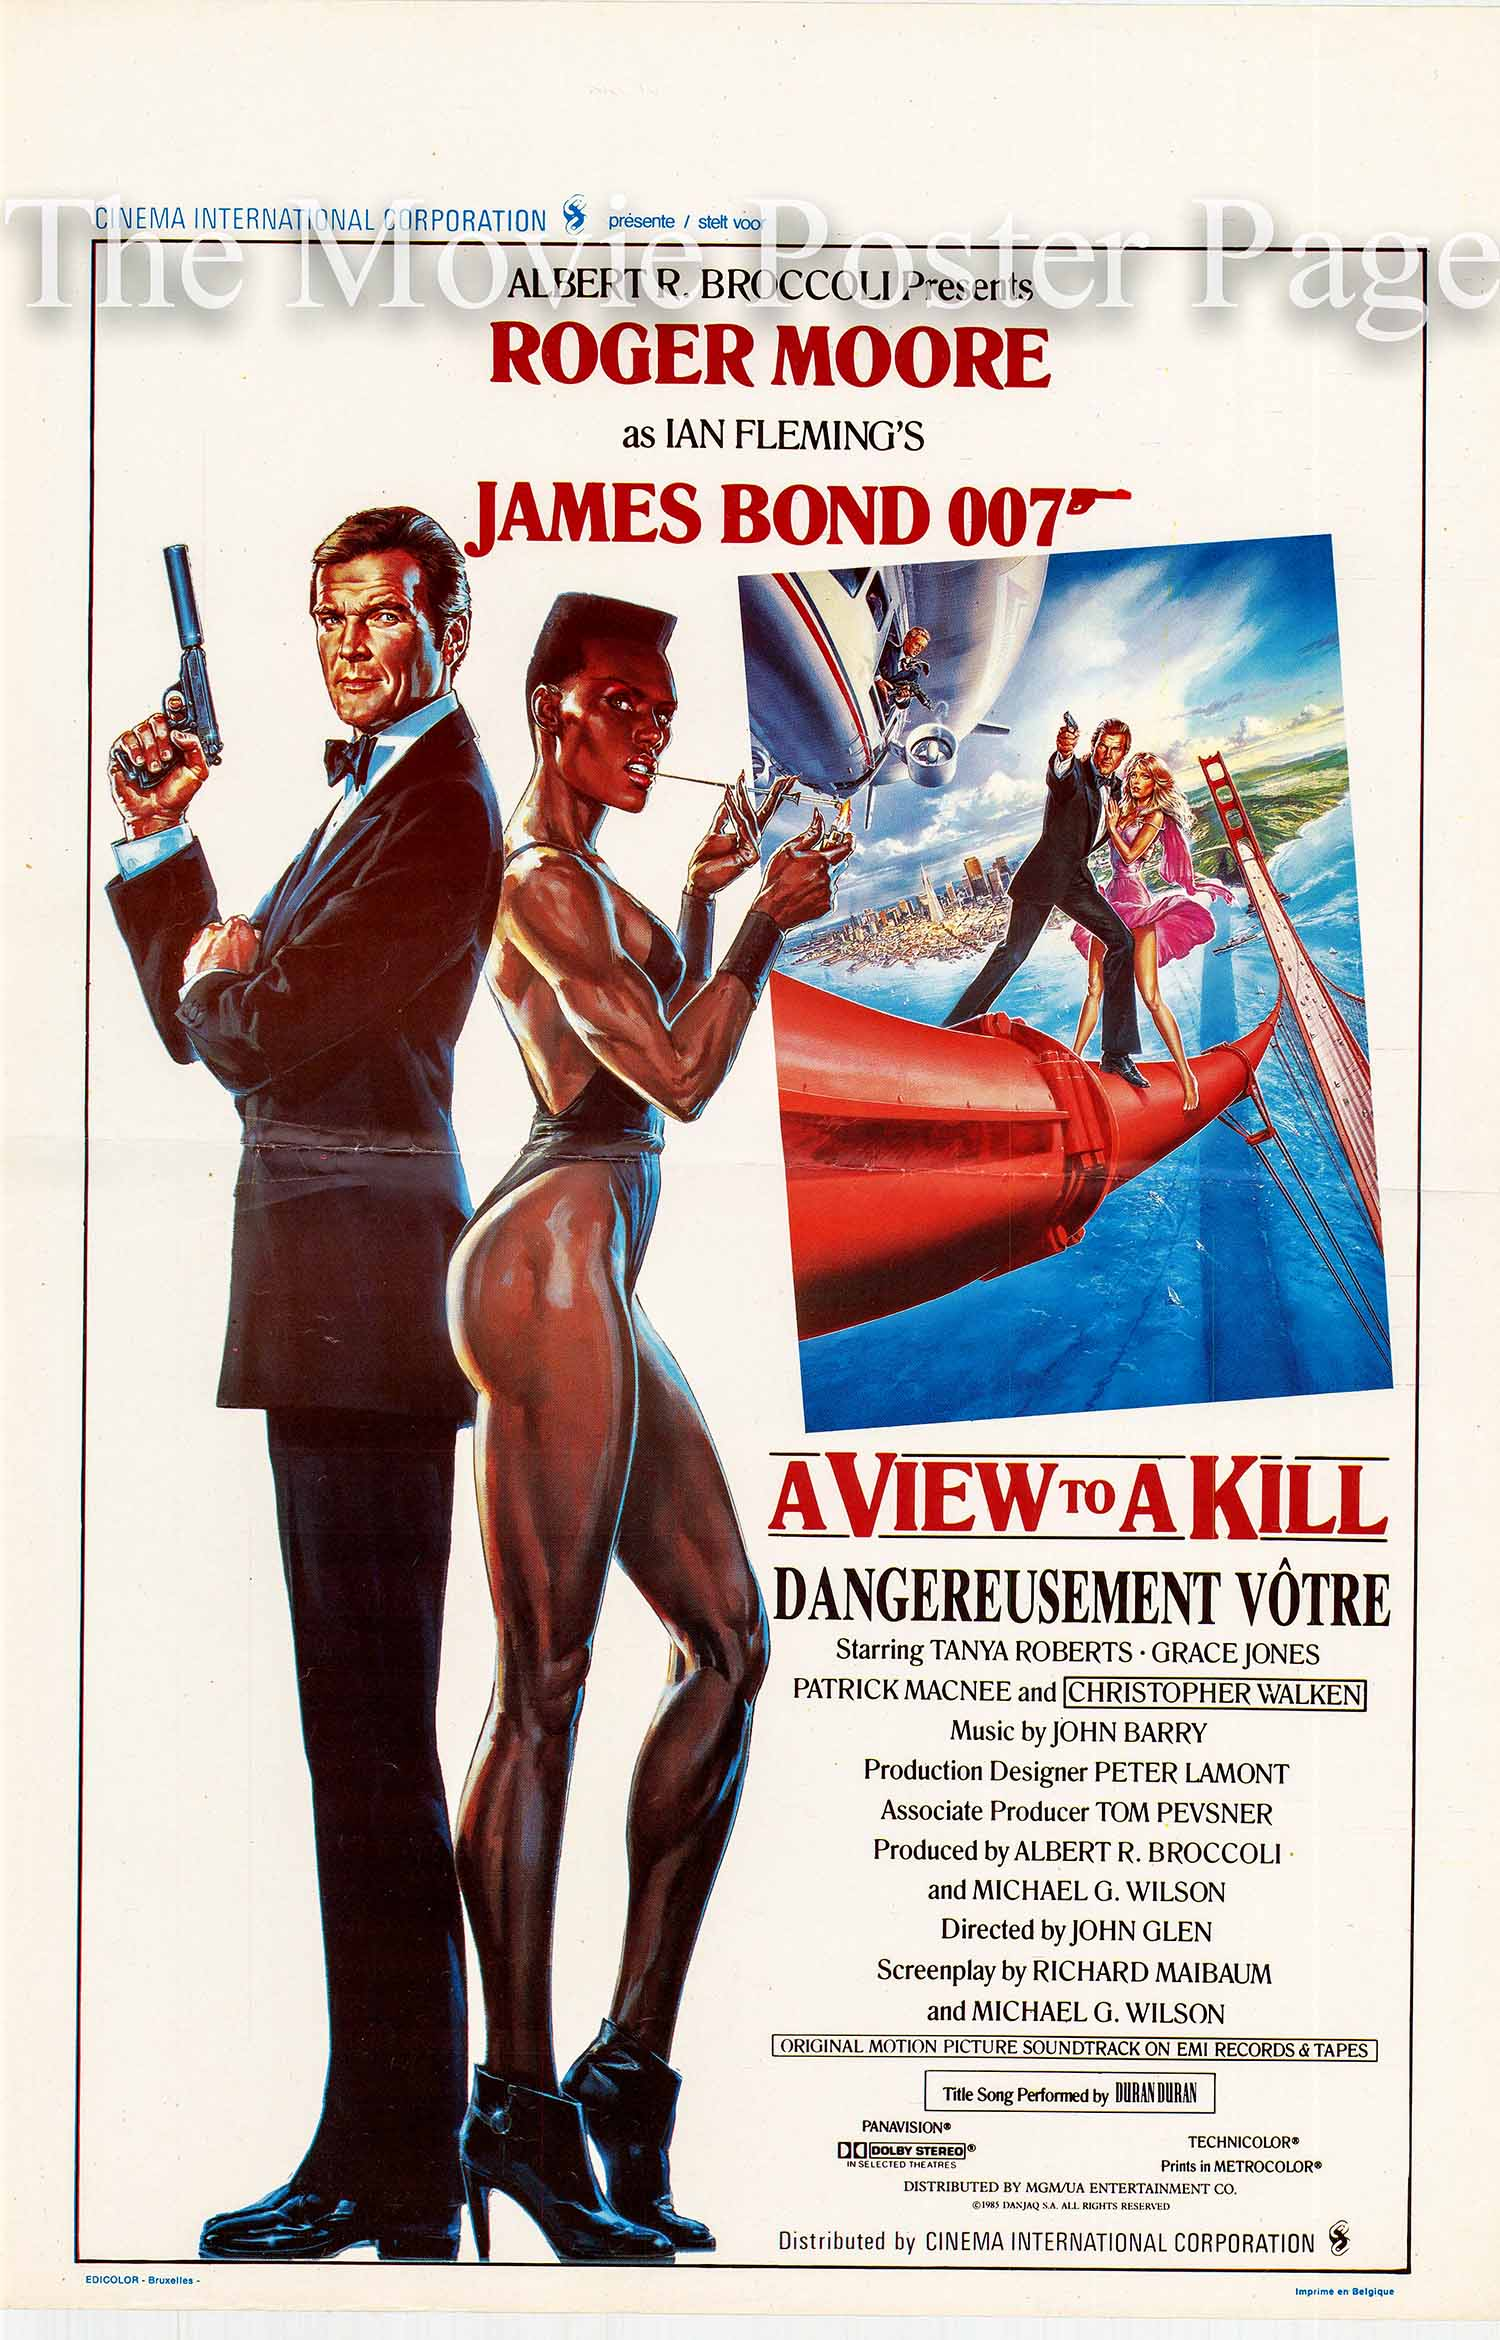 Pictured is a Belgian promotional poster for the 1985 John Glen film A View to a Kill starring Roger Moore as James Bond.